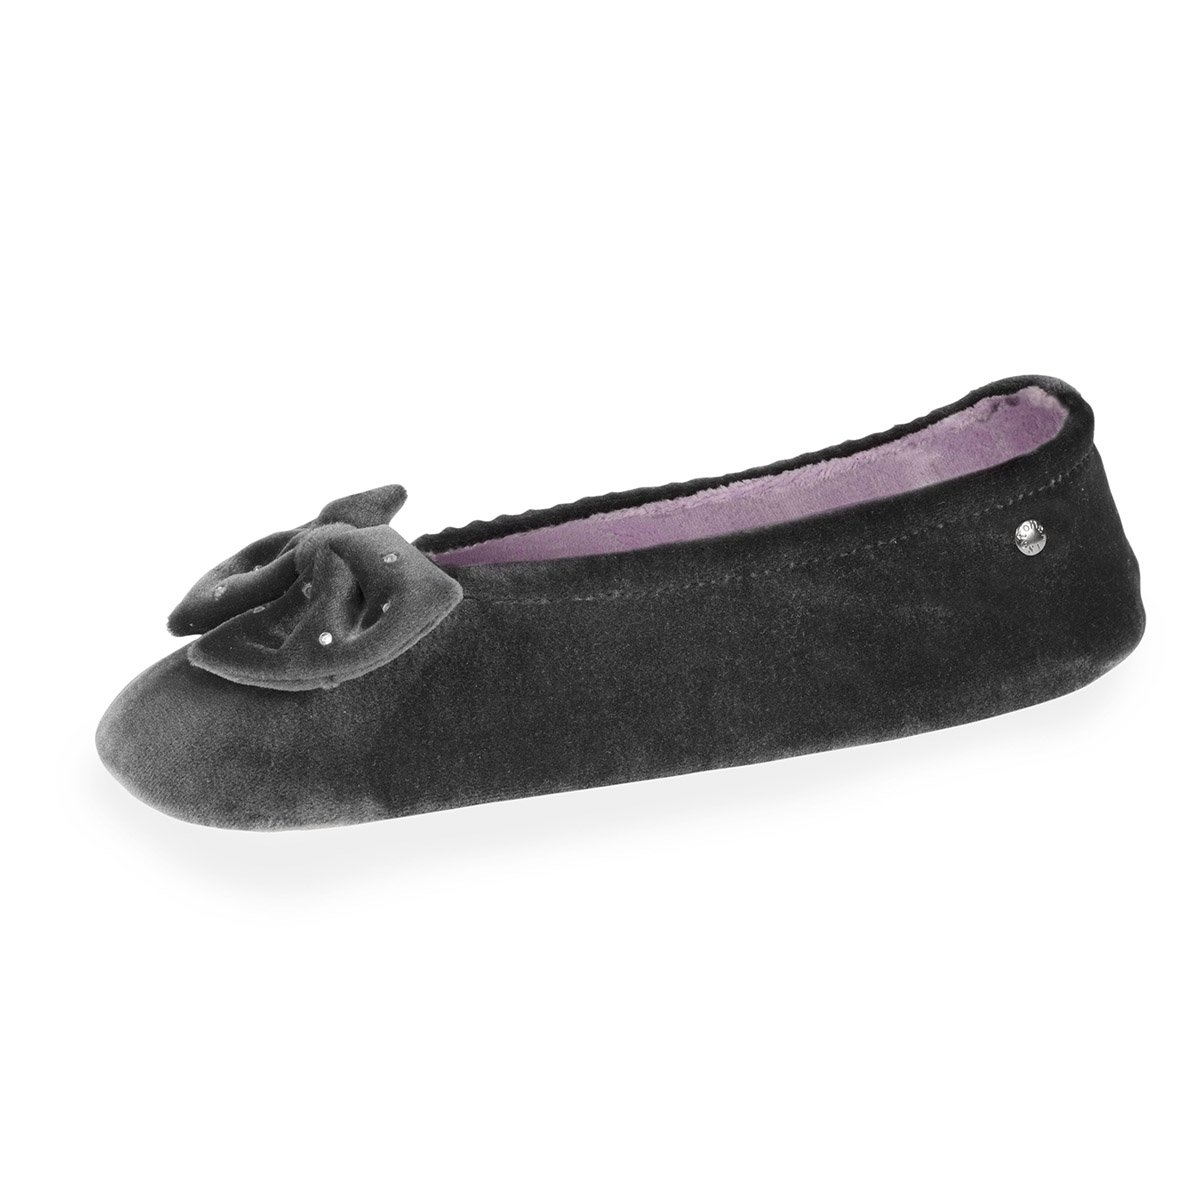 Isotoner Chaussons Ballerines Fille Grand nud